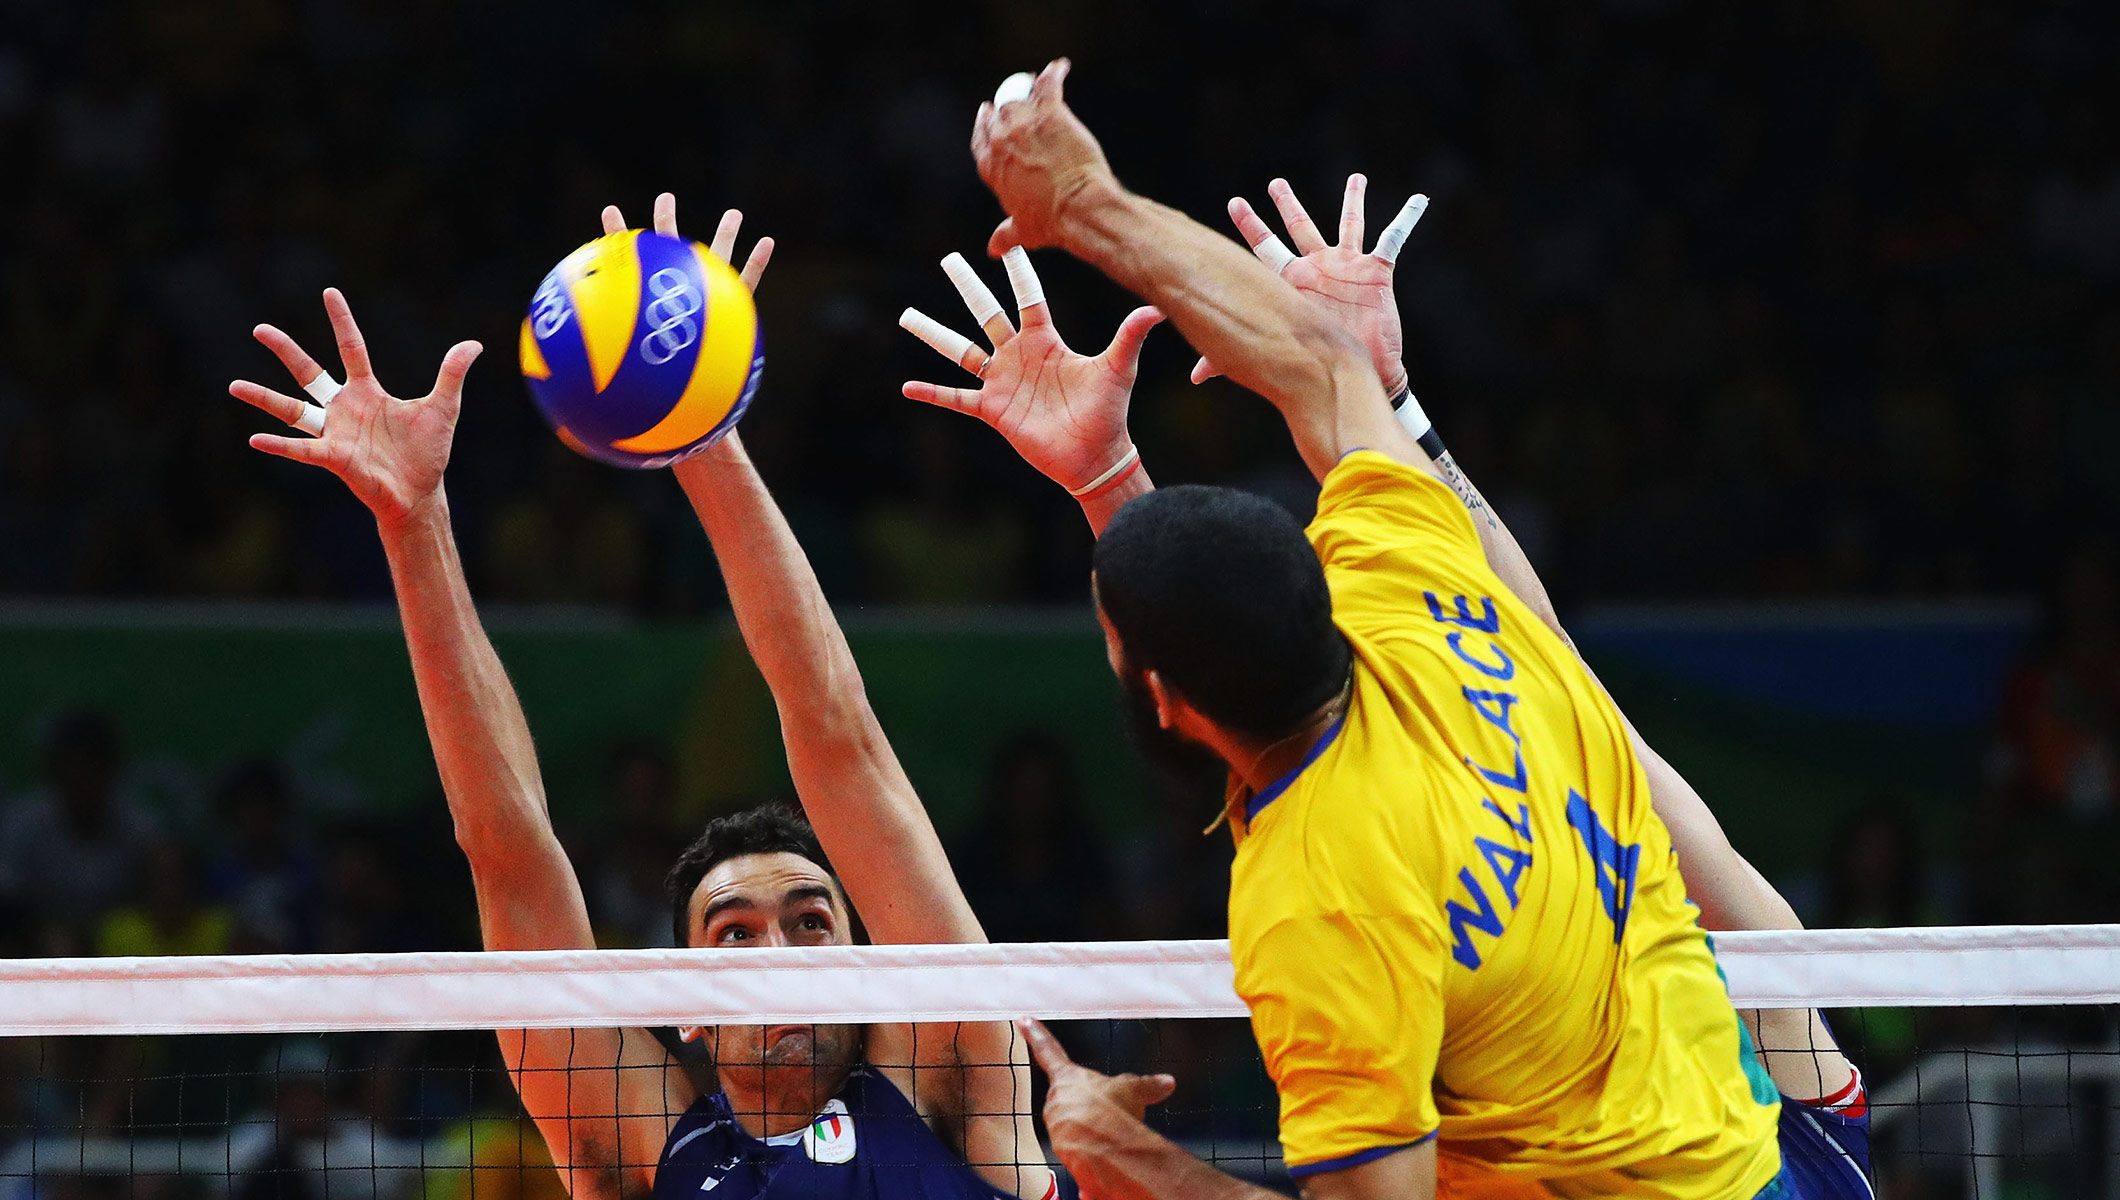 Volleyball: a brief history - Olympic News